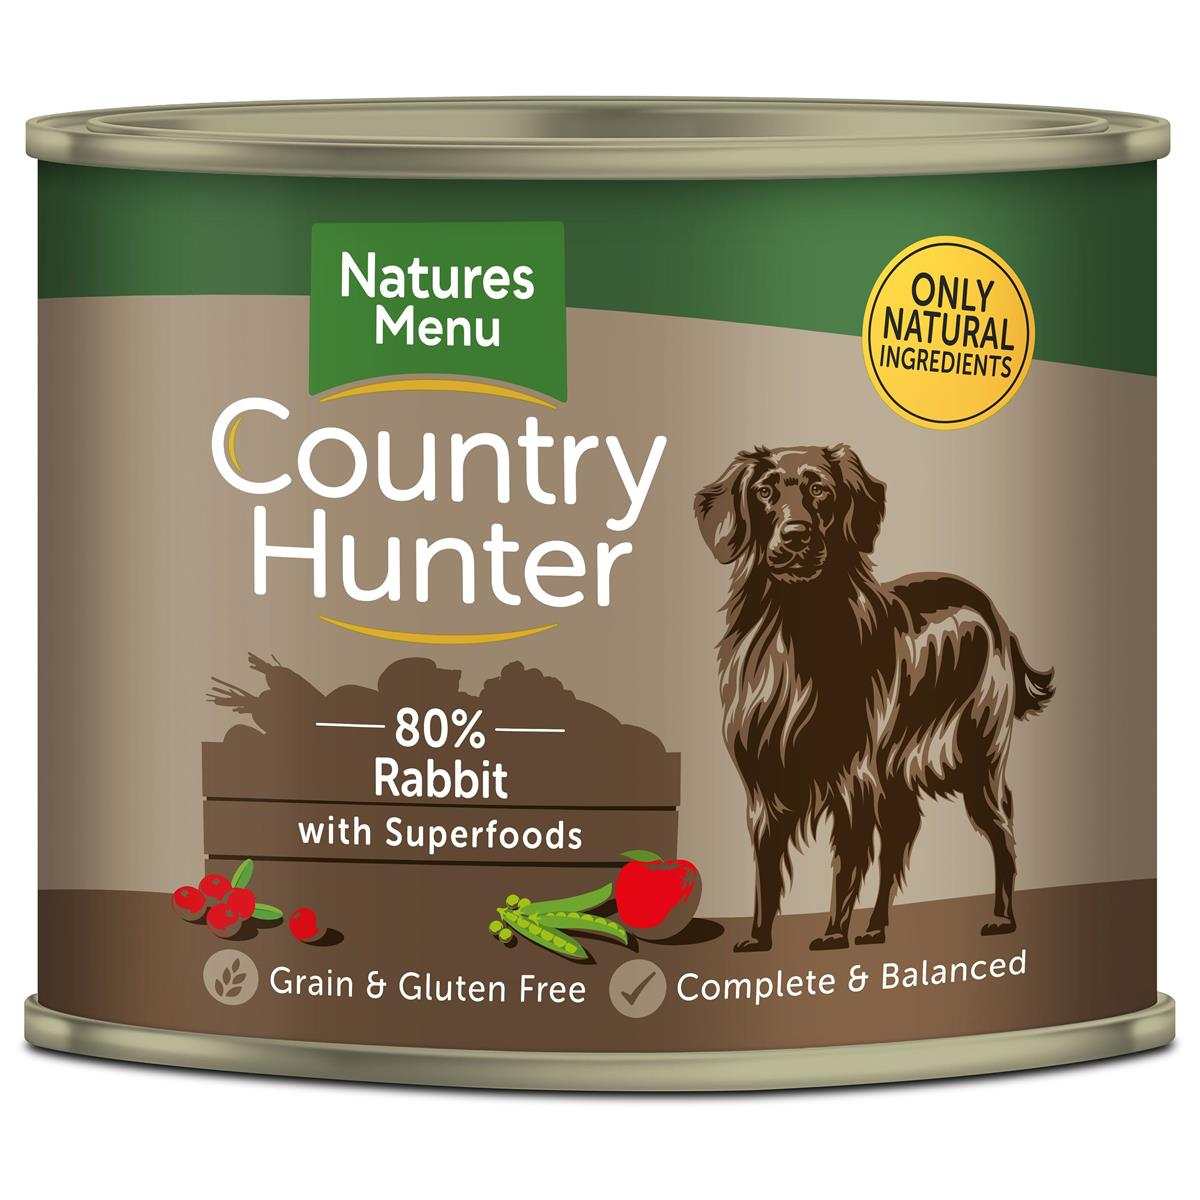 NM Boksemat Hund Country Hunter 80% Kanin & Tranebær 600g (6stk) Brun